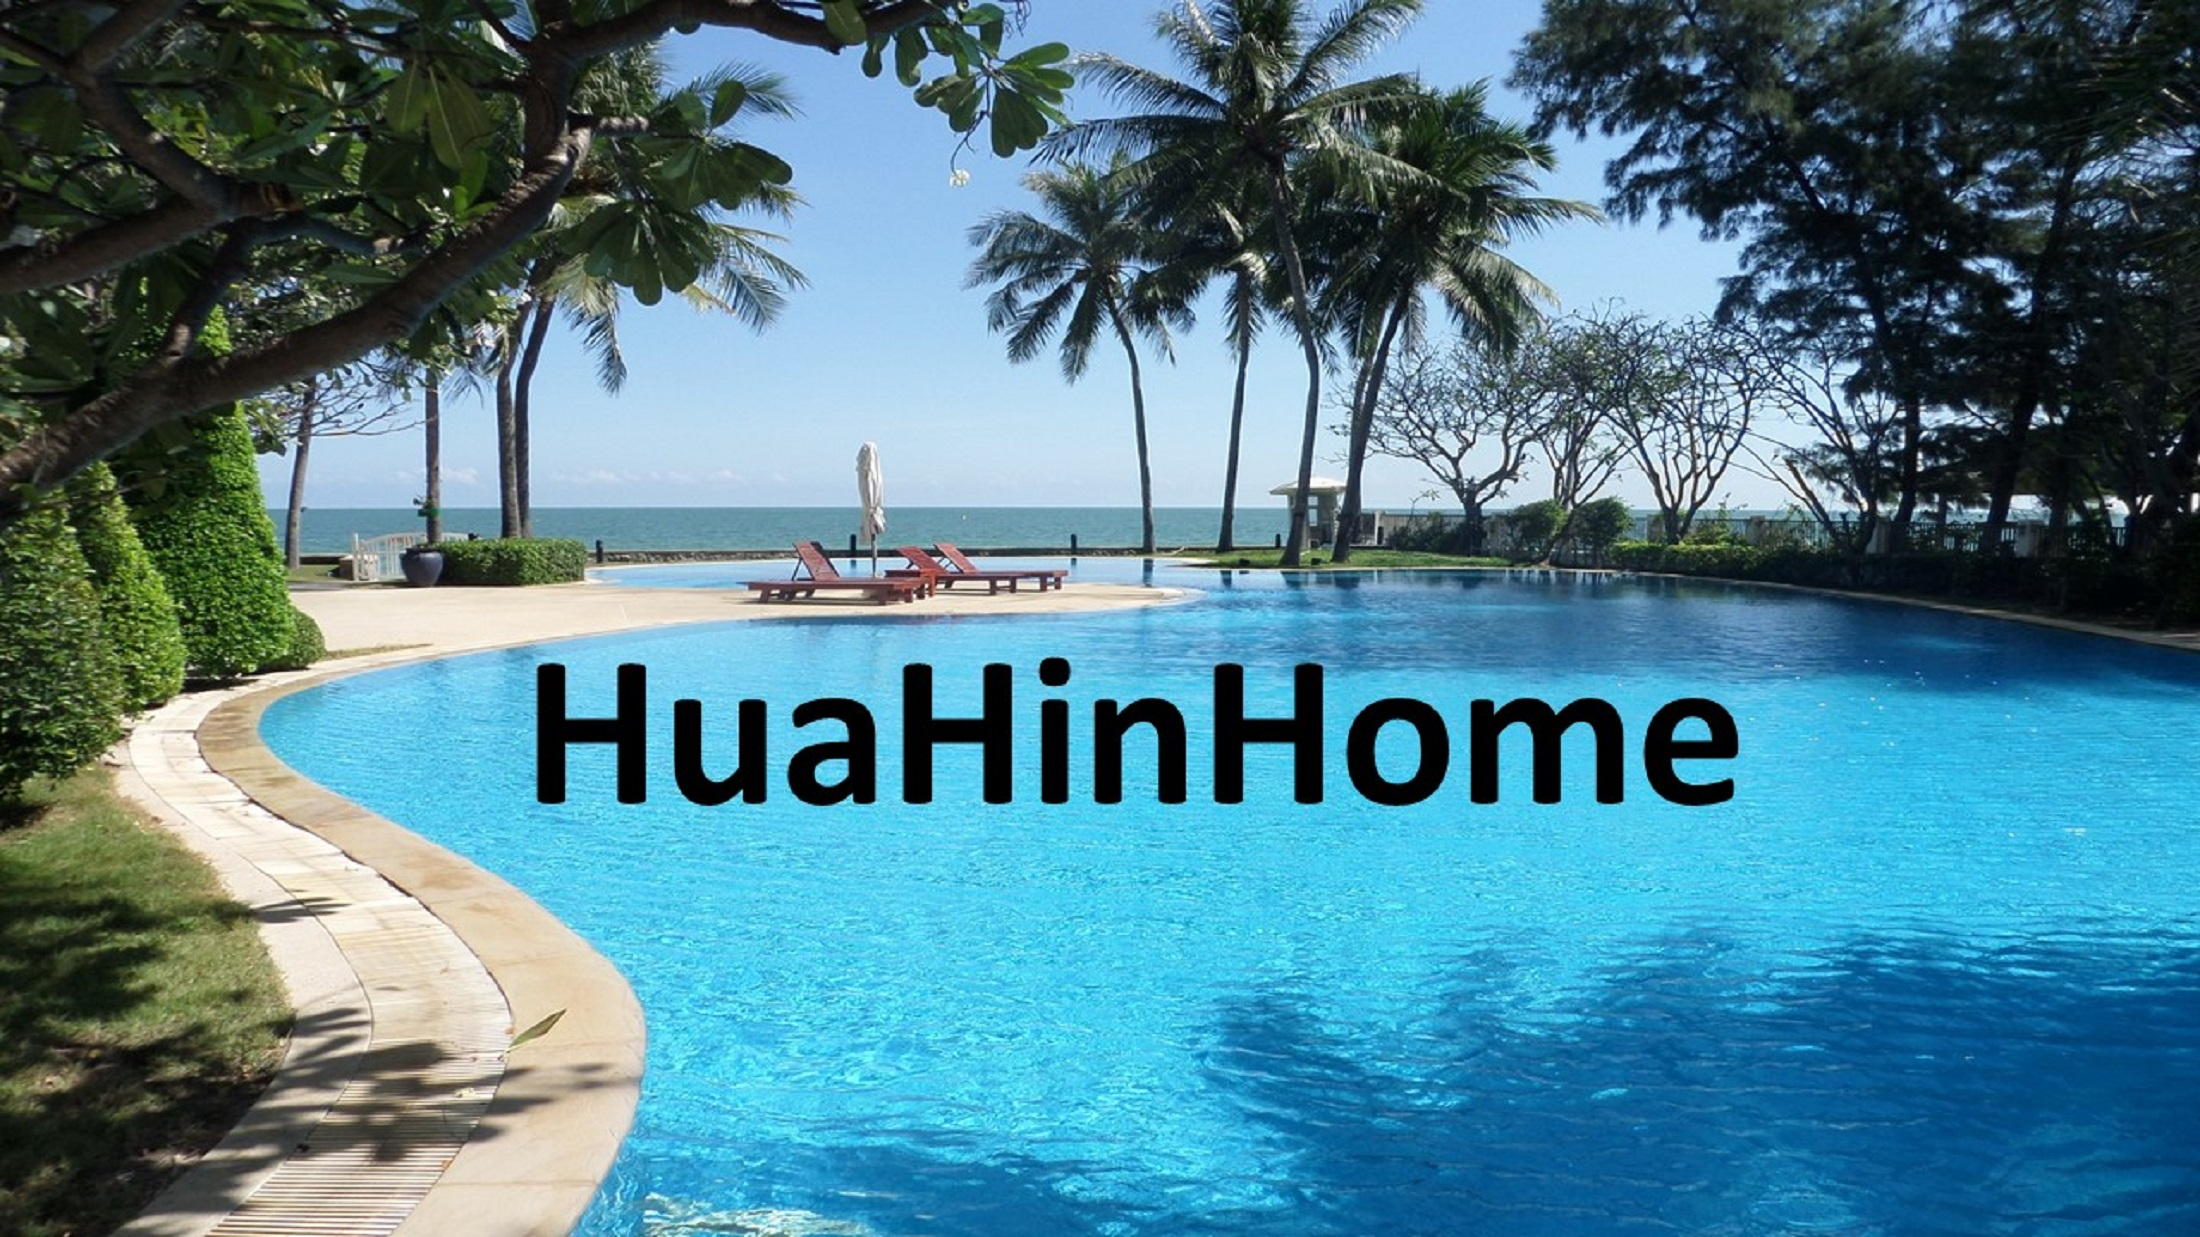 Huahinhome | Huahinhome   5 bedroom houses. Price 10000 plus baht